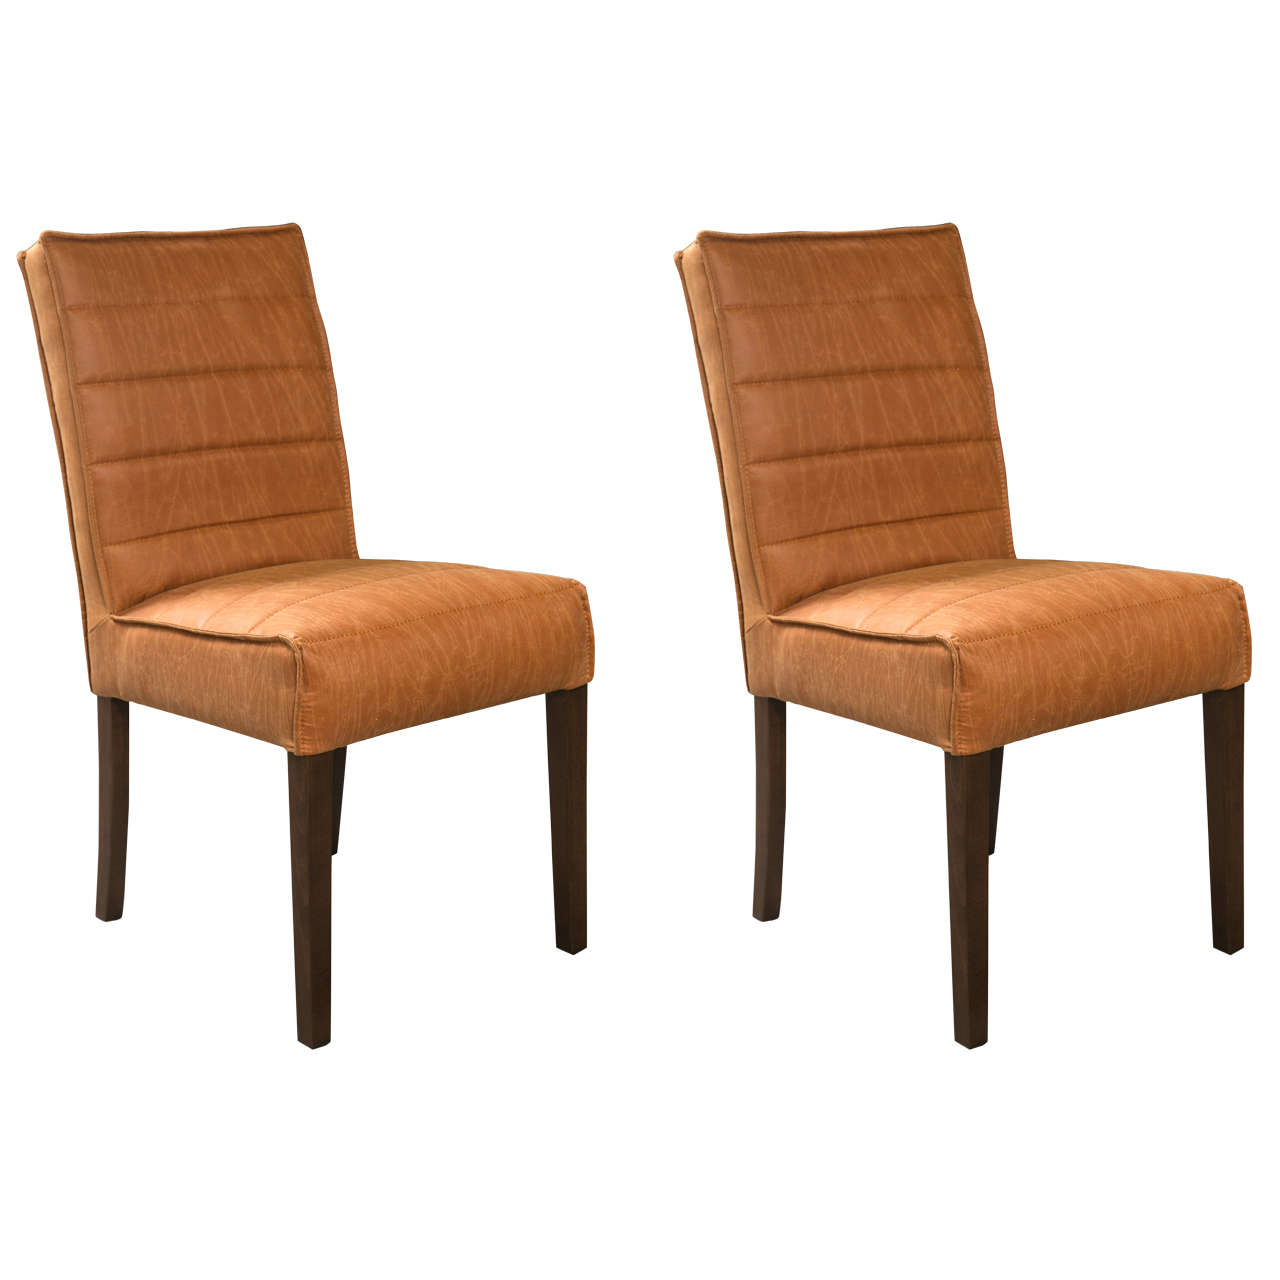 Pair of hollywood regency style leather side chairs at stdibs